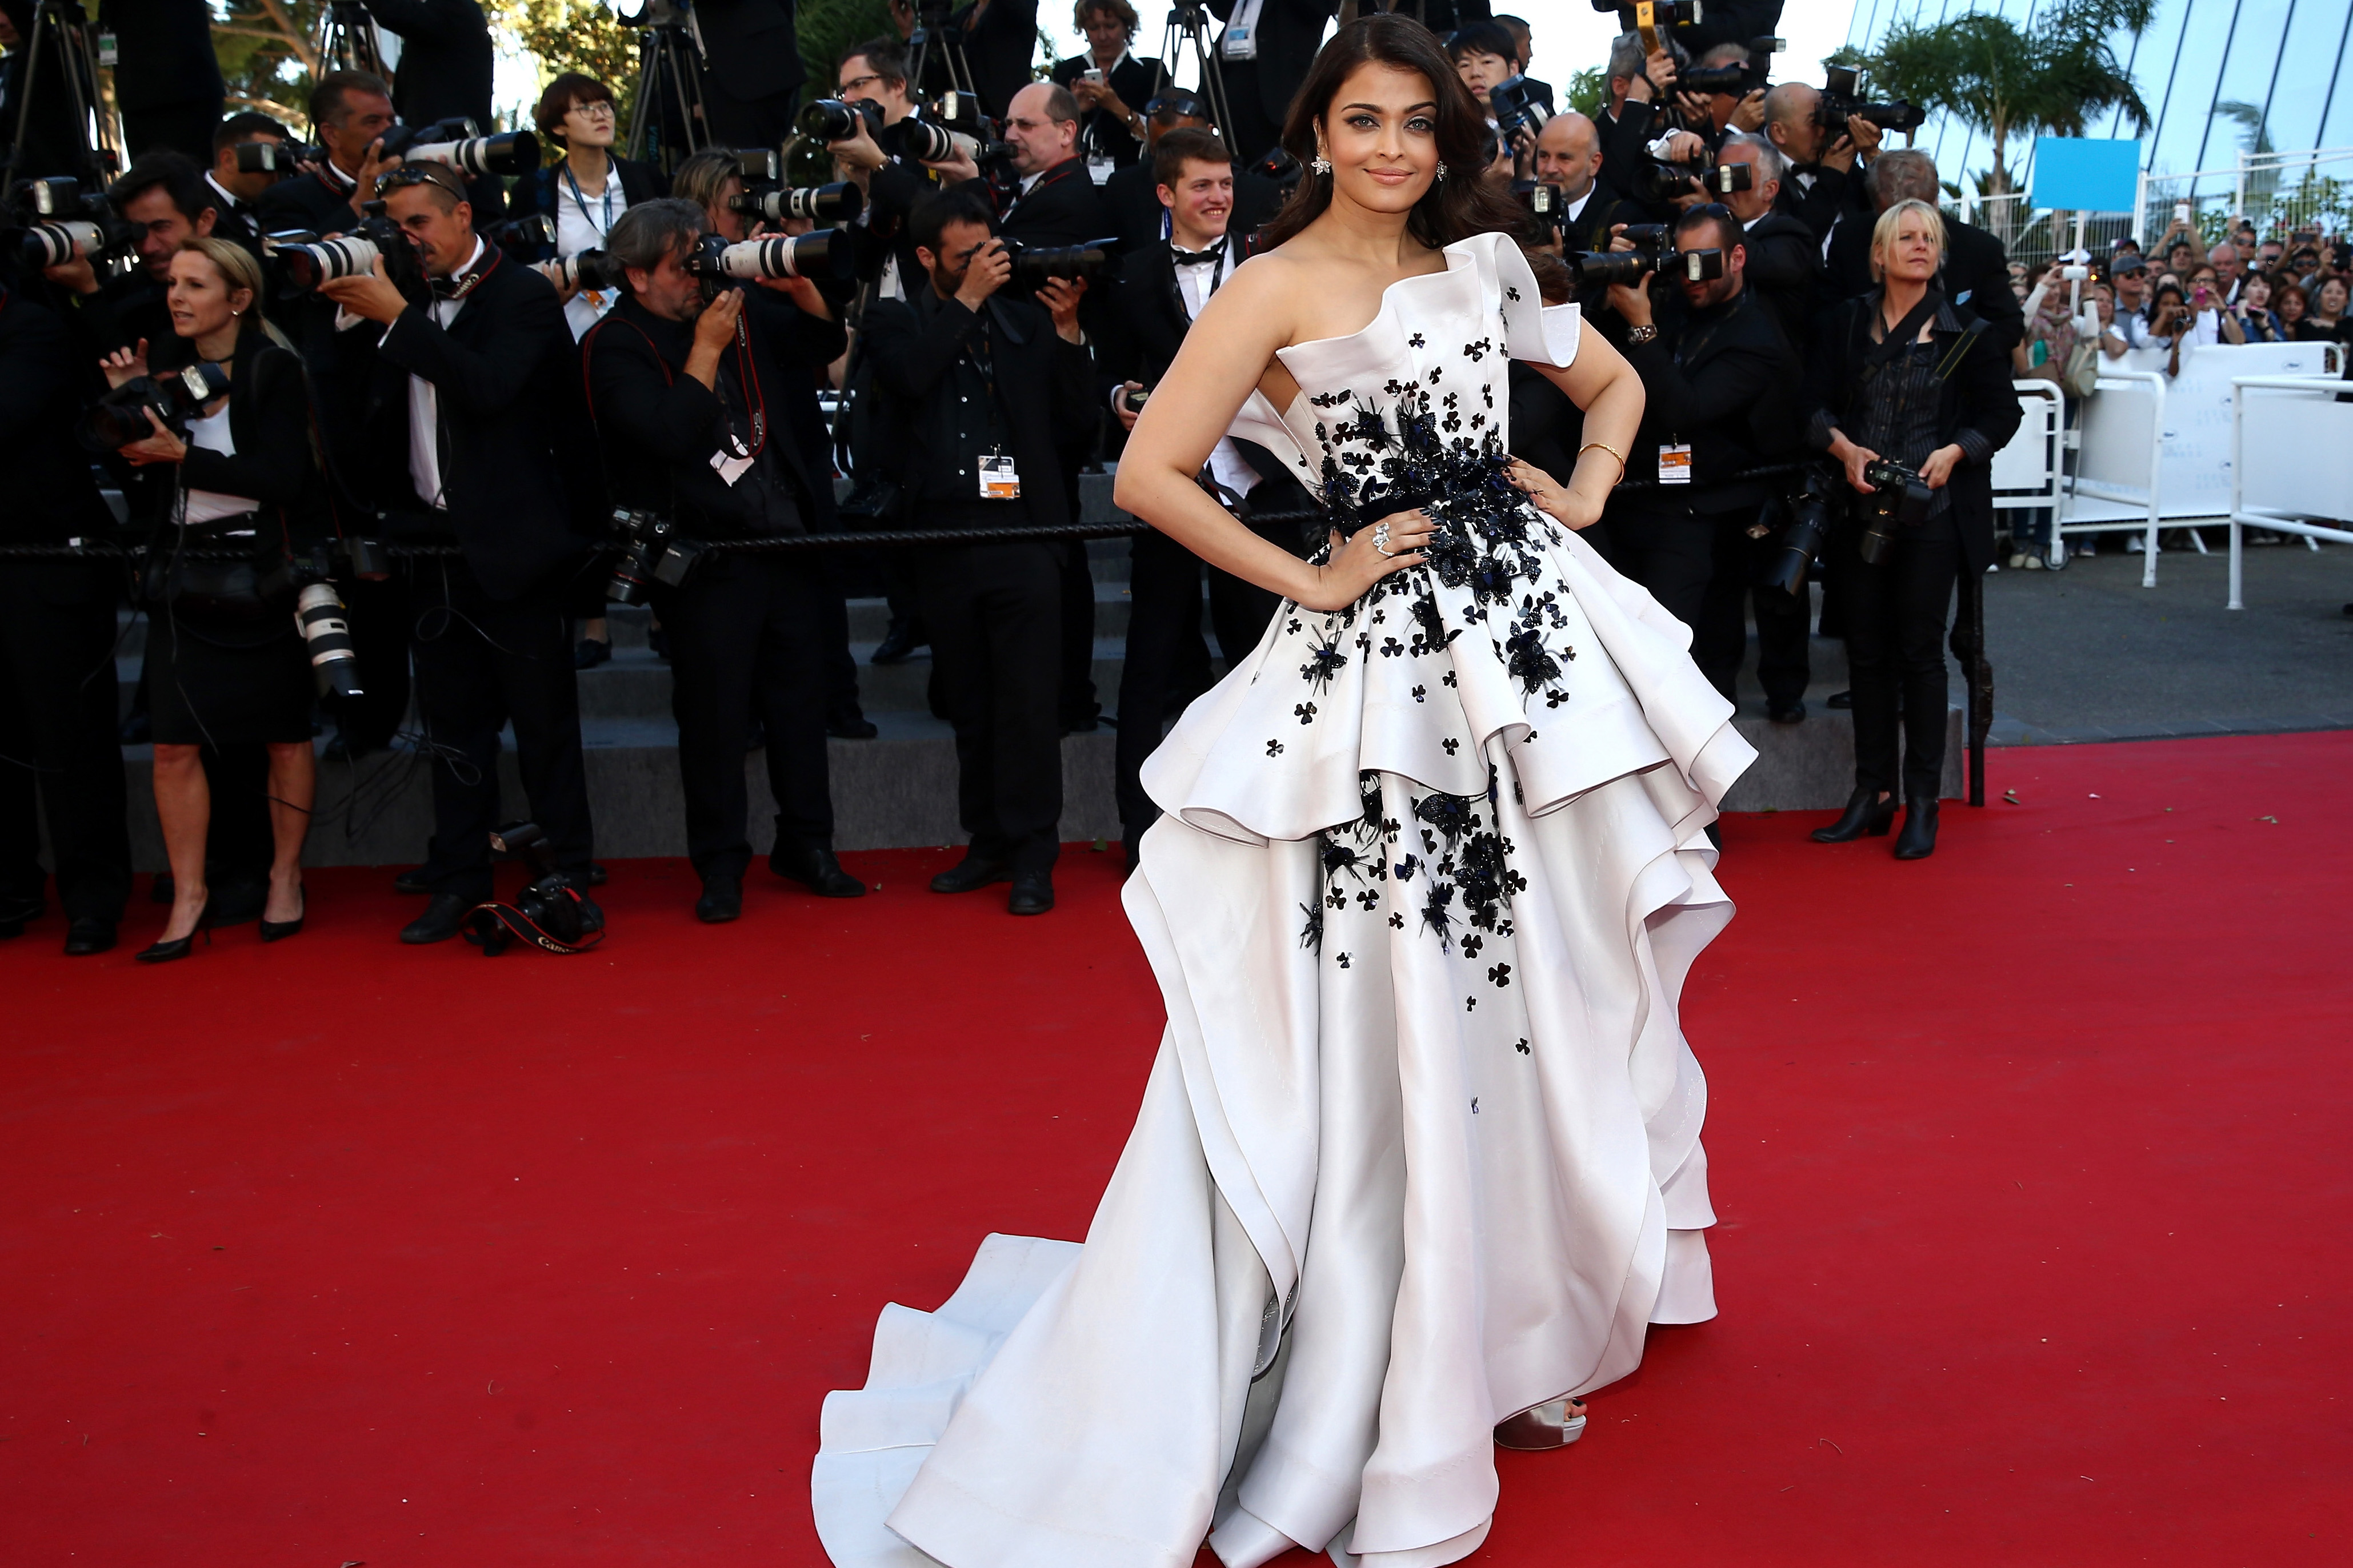 """CANNES, FRANCE - MAY 20: Aishwarya Rai Bachchan attends the Premiere of """"Youth"""" during the 68th annual Cannes Film Festival on May 20, 2015 in Cannes, France. (Photo by Andreas Rentz/Getty Images)"""